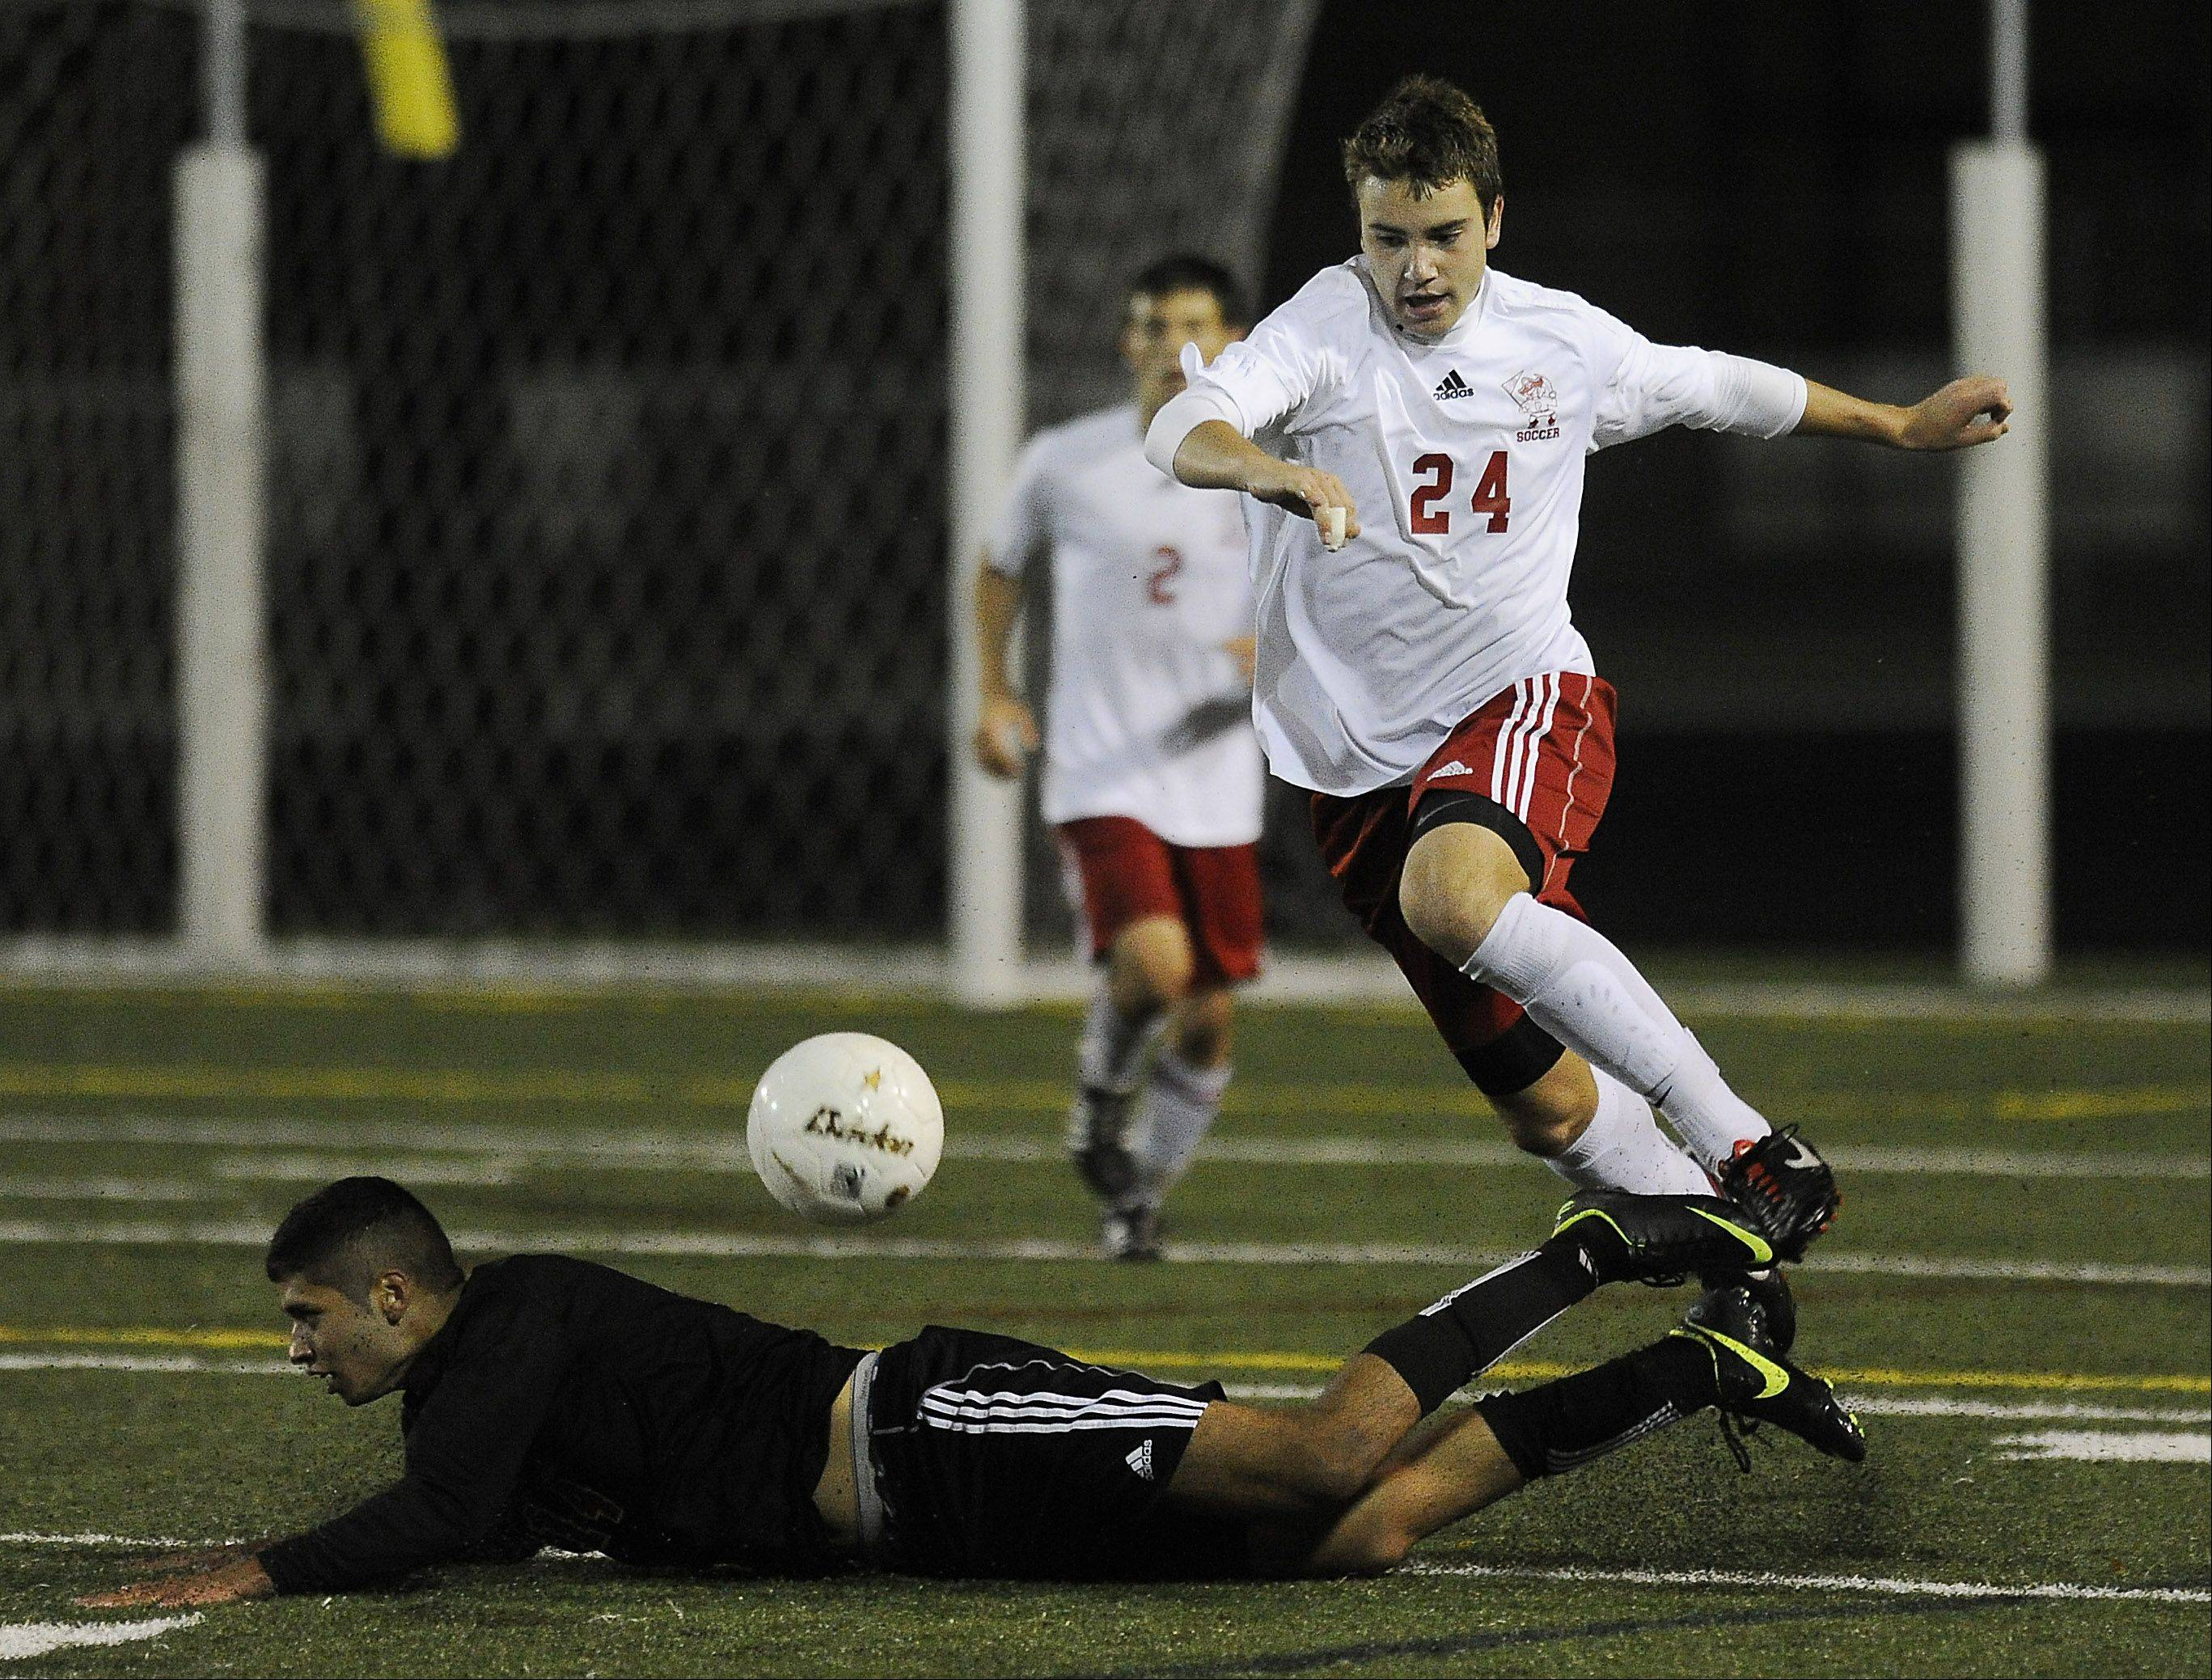 Palatine's Jeremy Velinski hurdles Barrington's Fernando Telles in the first period Thursday at Palatine.